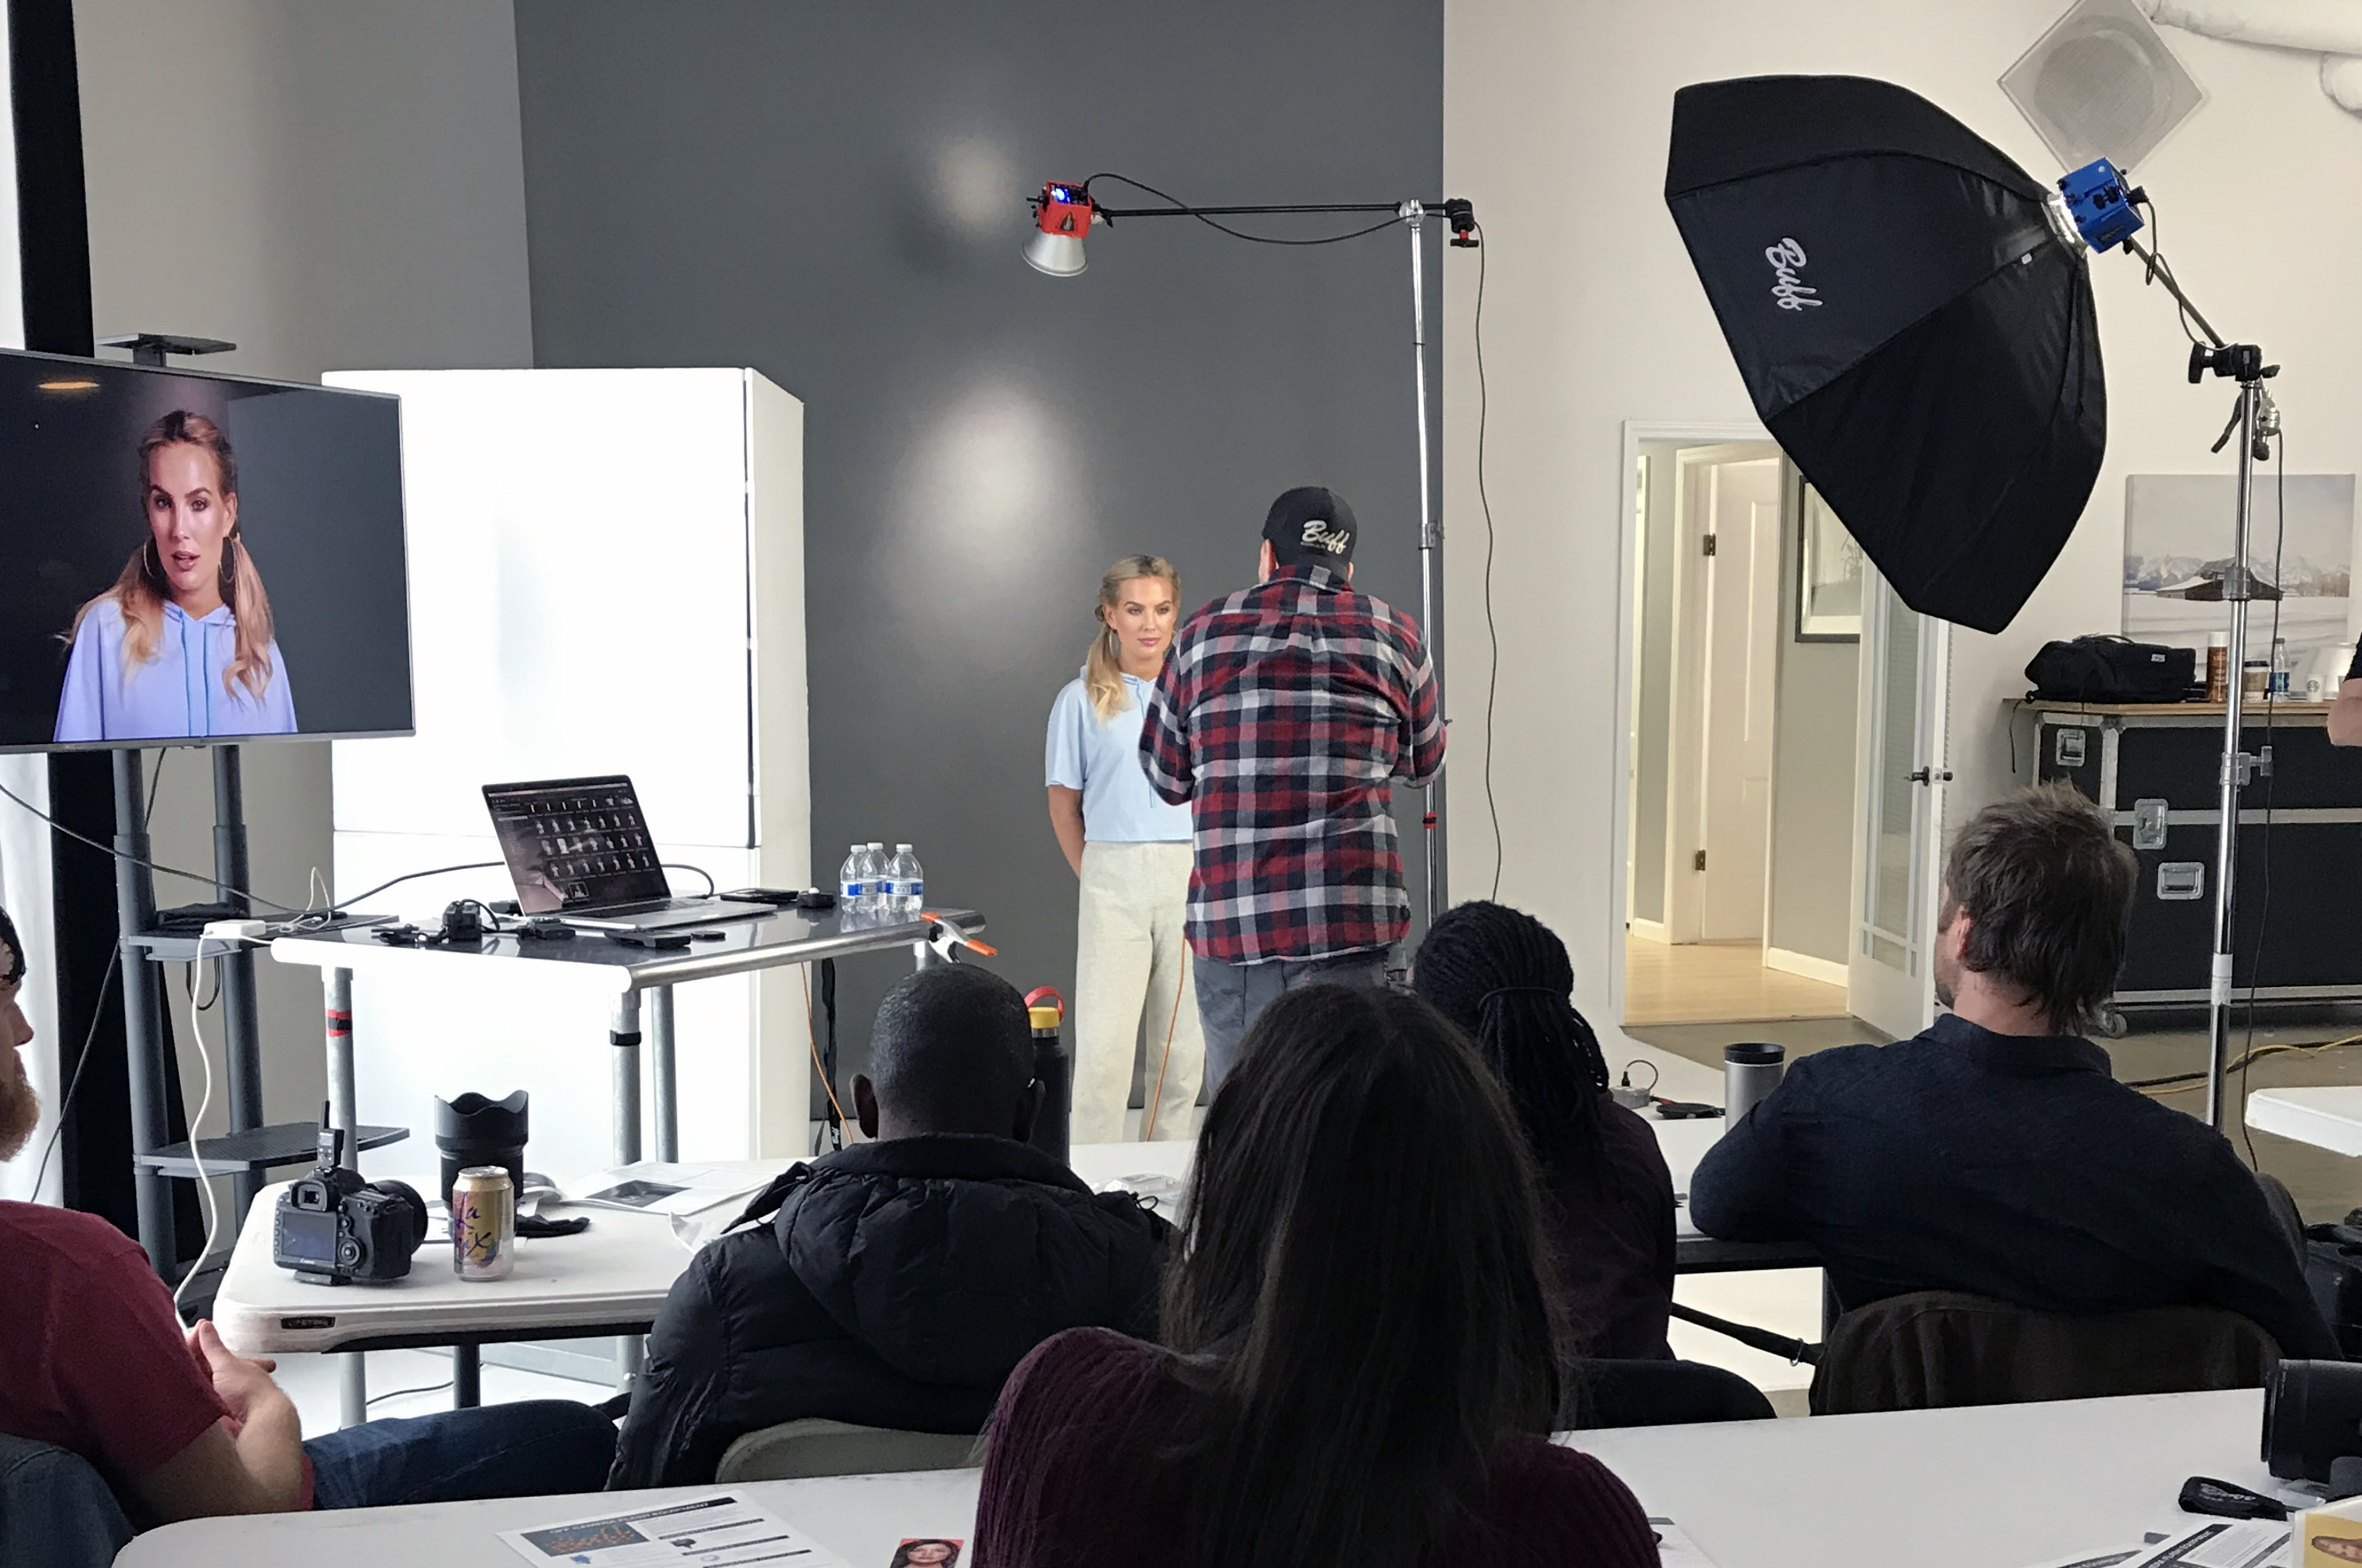 Jeff Carpenter during his Next Level Lighting workshop with model Allee-Sutton Hethcoat at Westlight Studios in Franklin, TN.